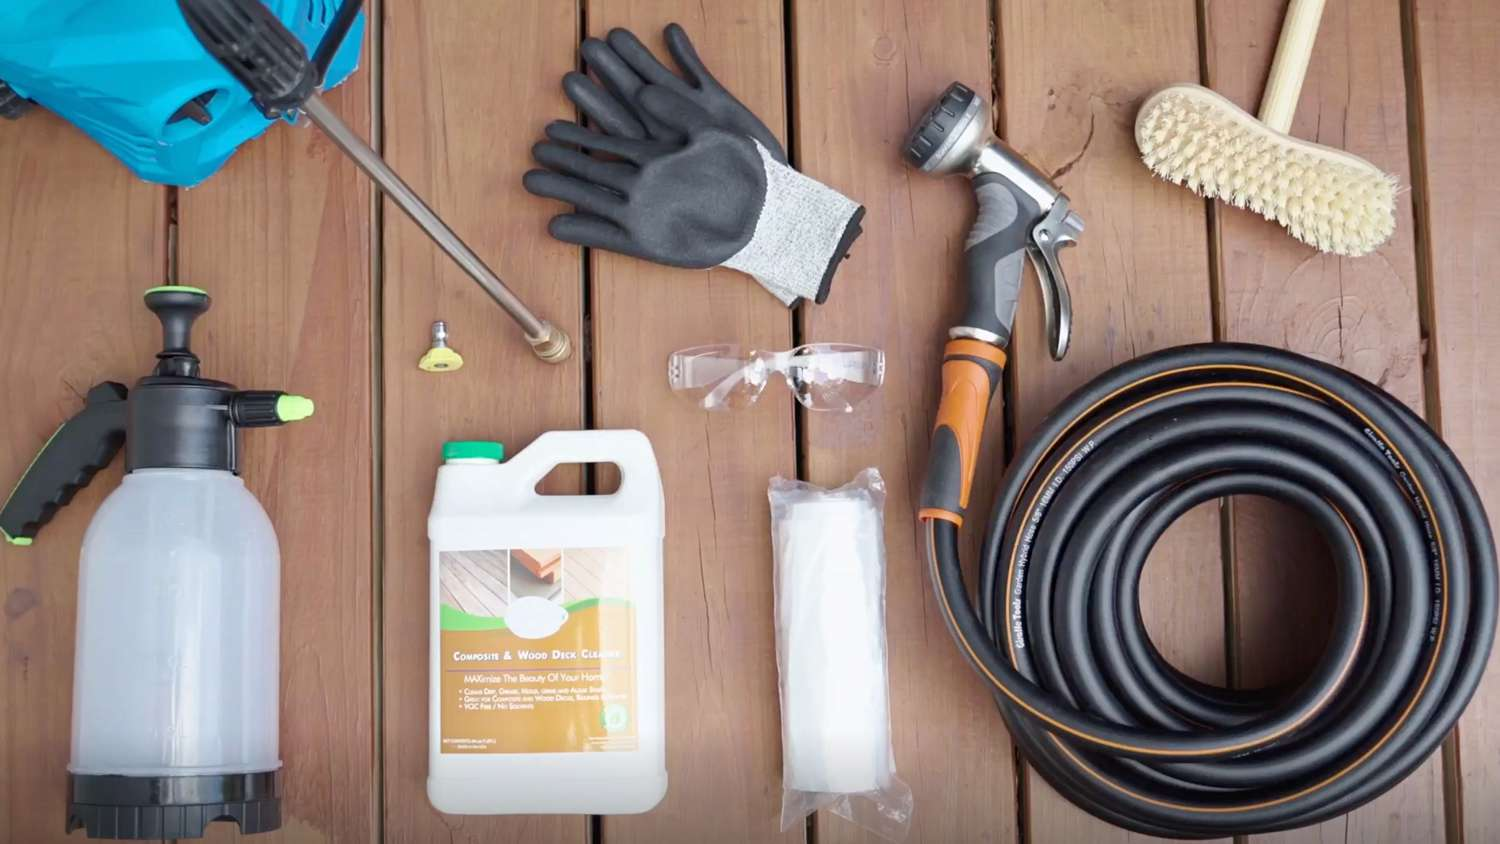 items for power washing a deck